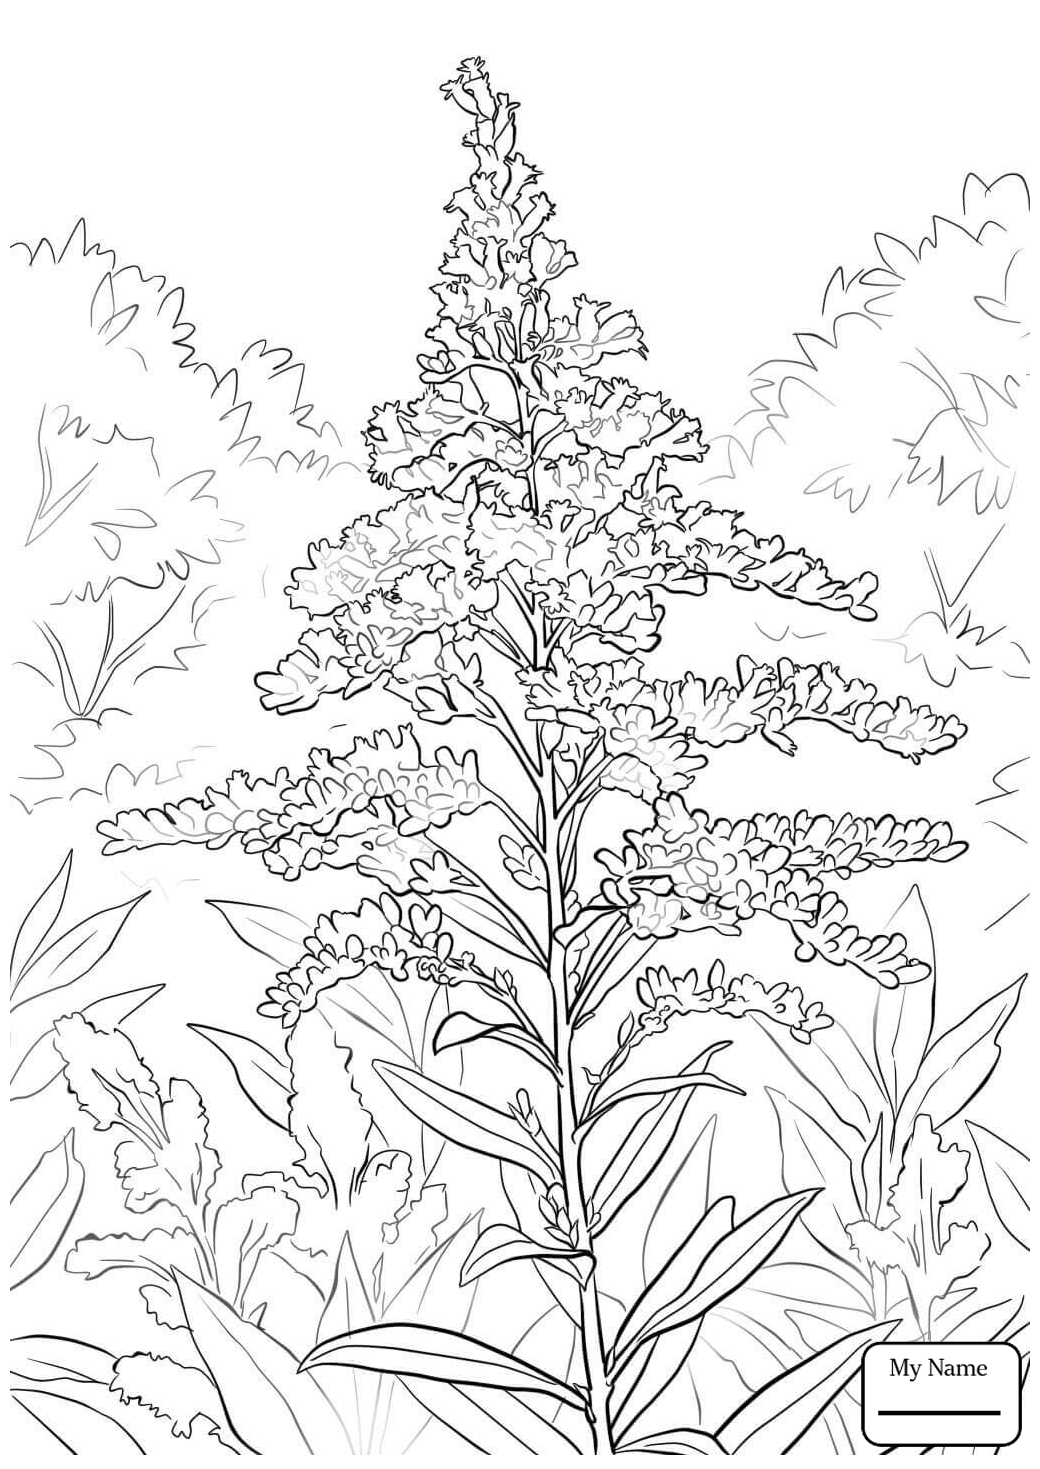 how to draw a goldenrod flower sweet golden rod solidugo odora goldenrod flower how to flower goldenrod draw a